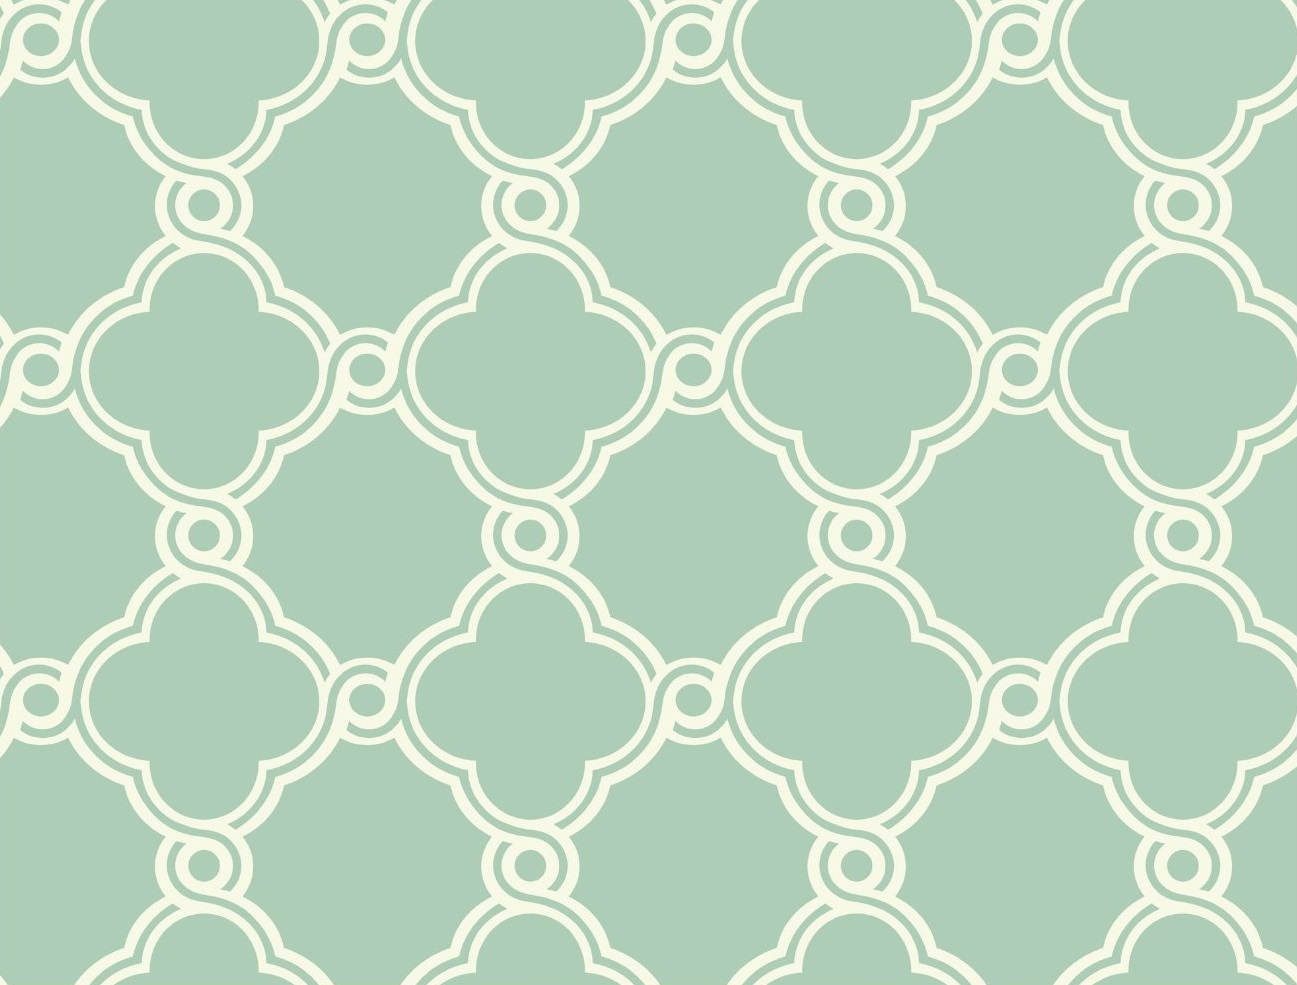 Mint Green Pattern Wallpaper Mintugreenuwallpaperjpg 1297x985